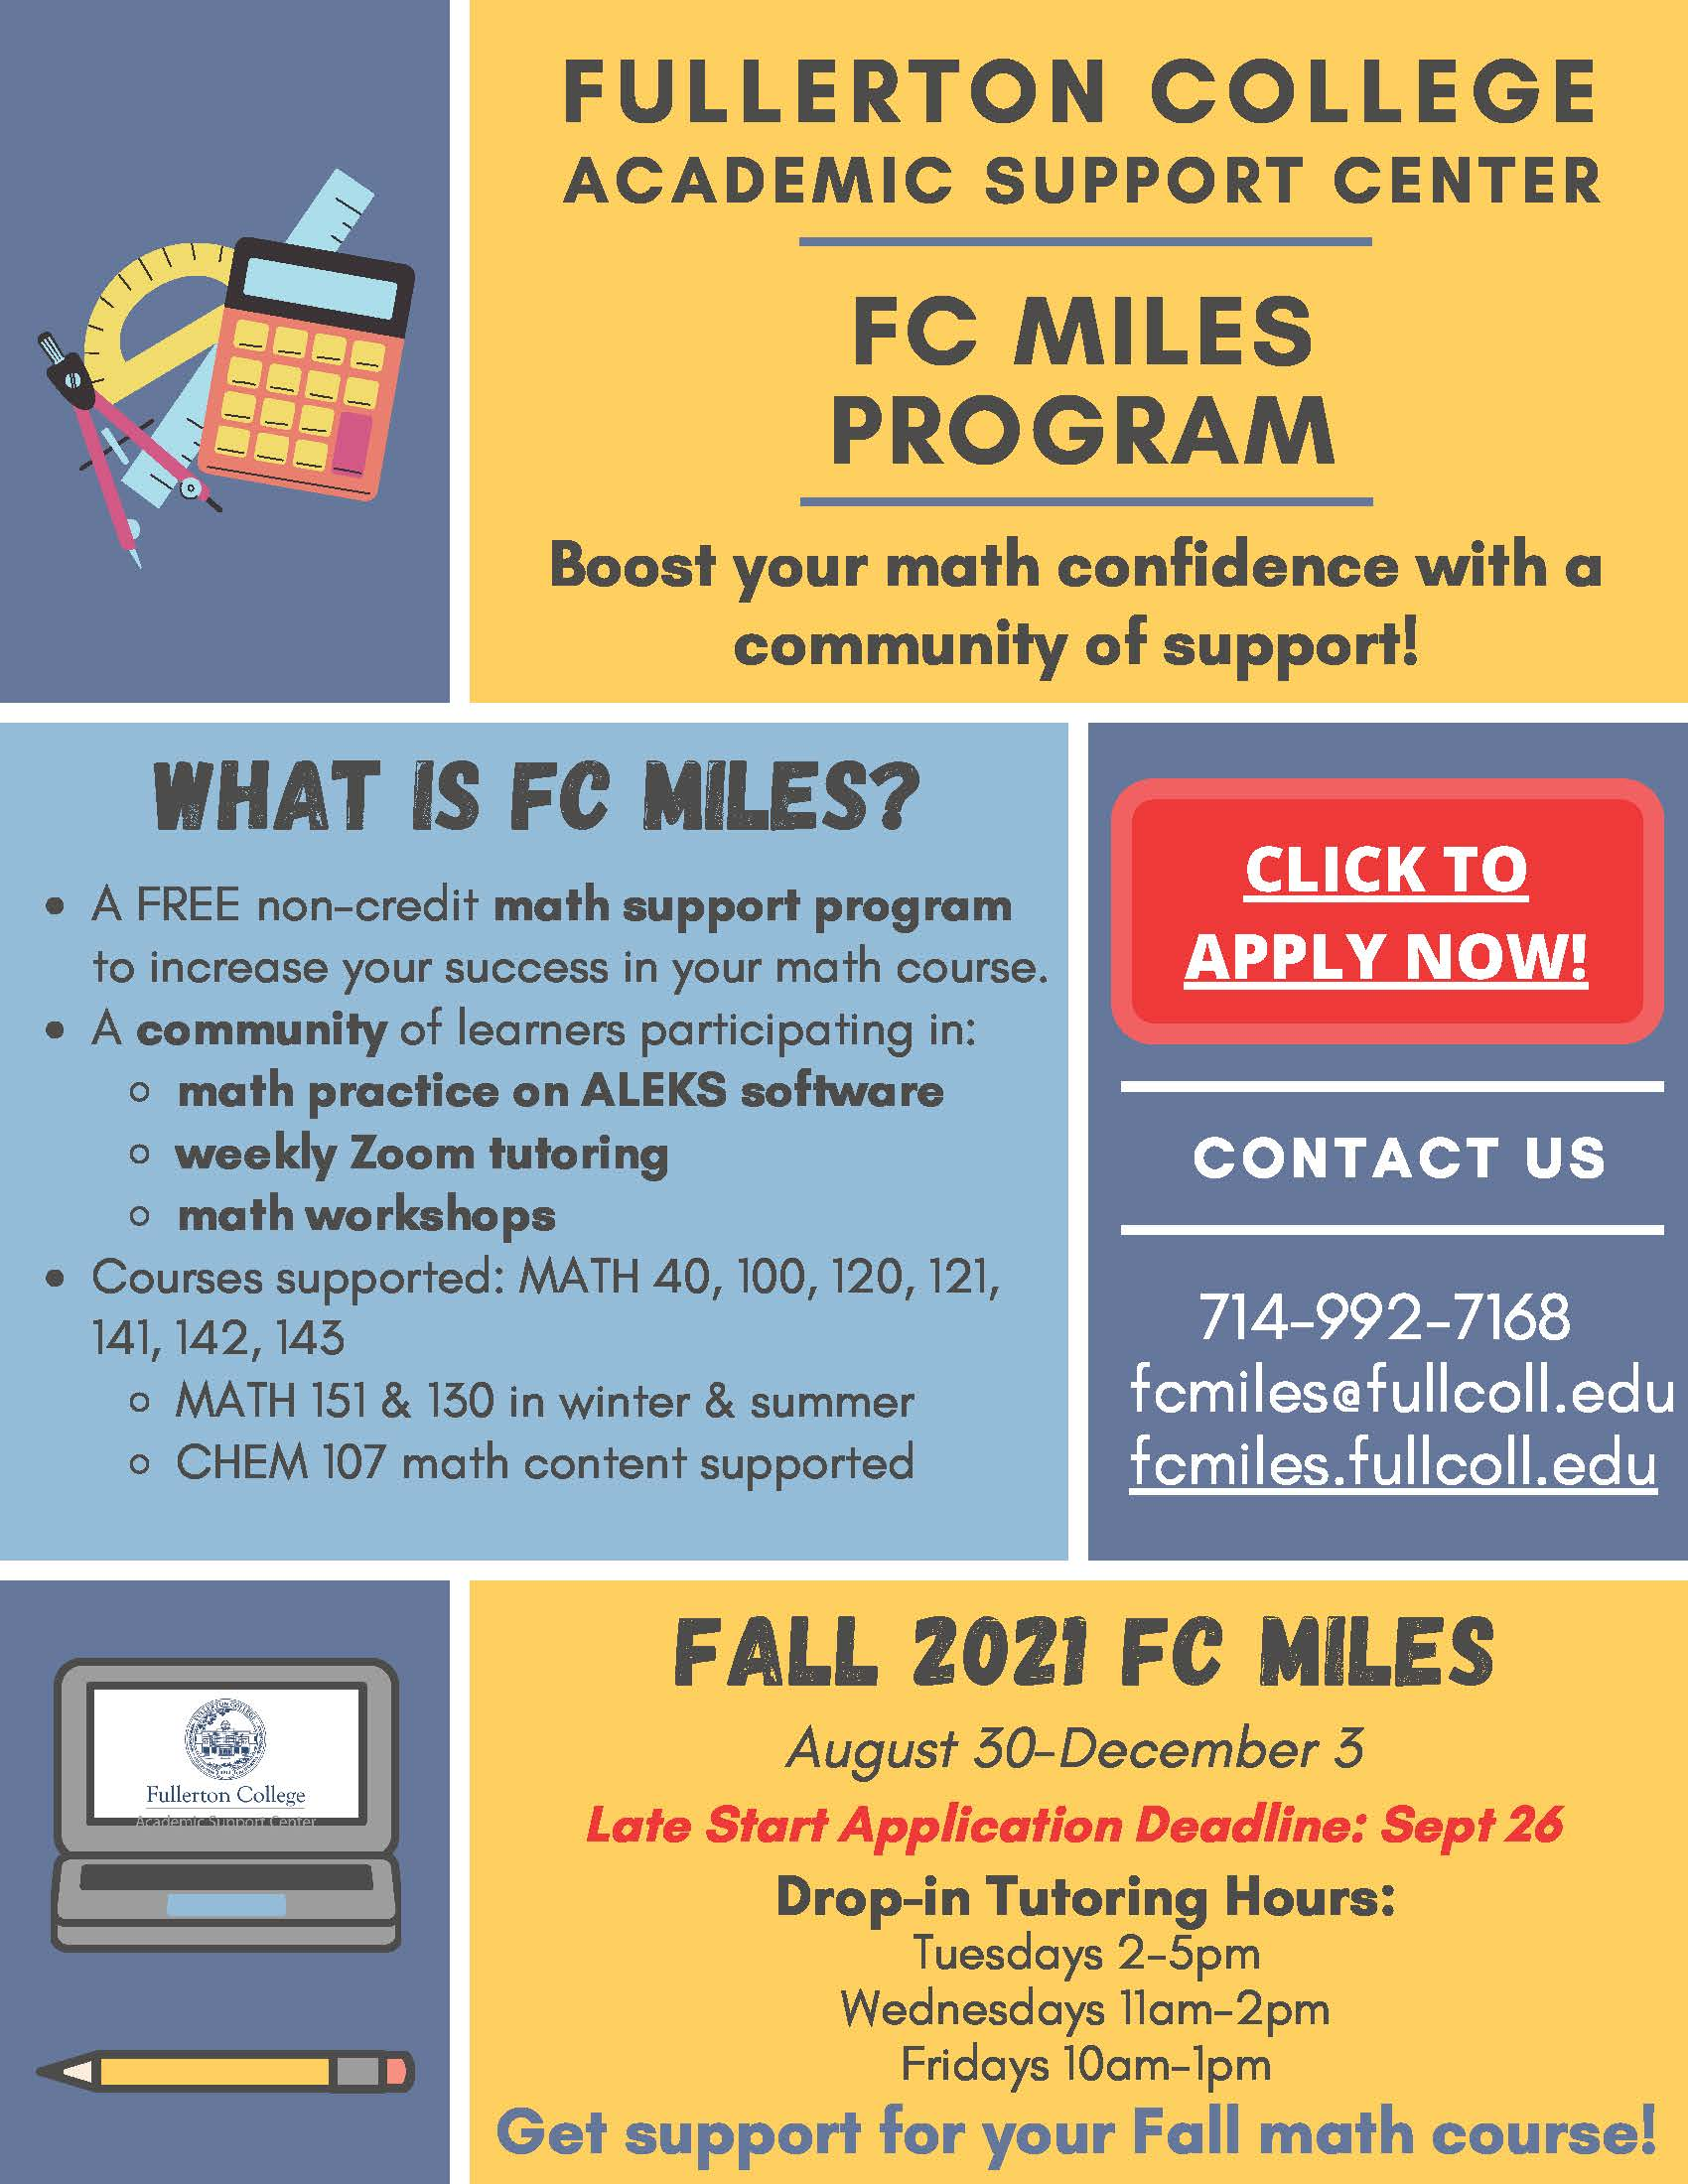 FC MILES Fall 2021 Flyer